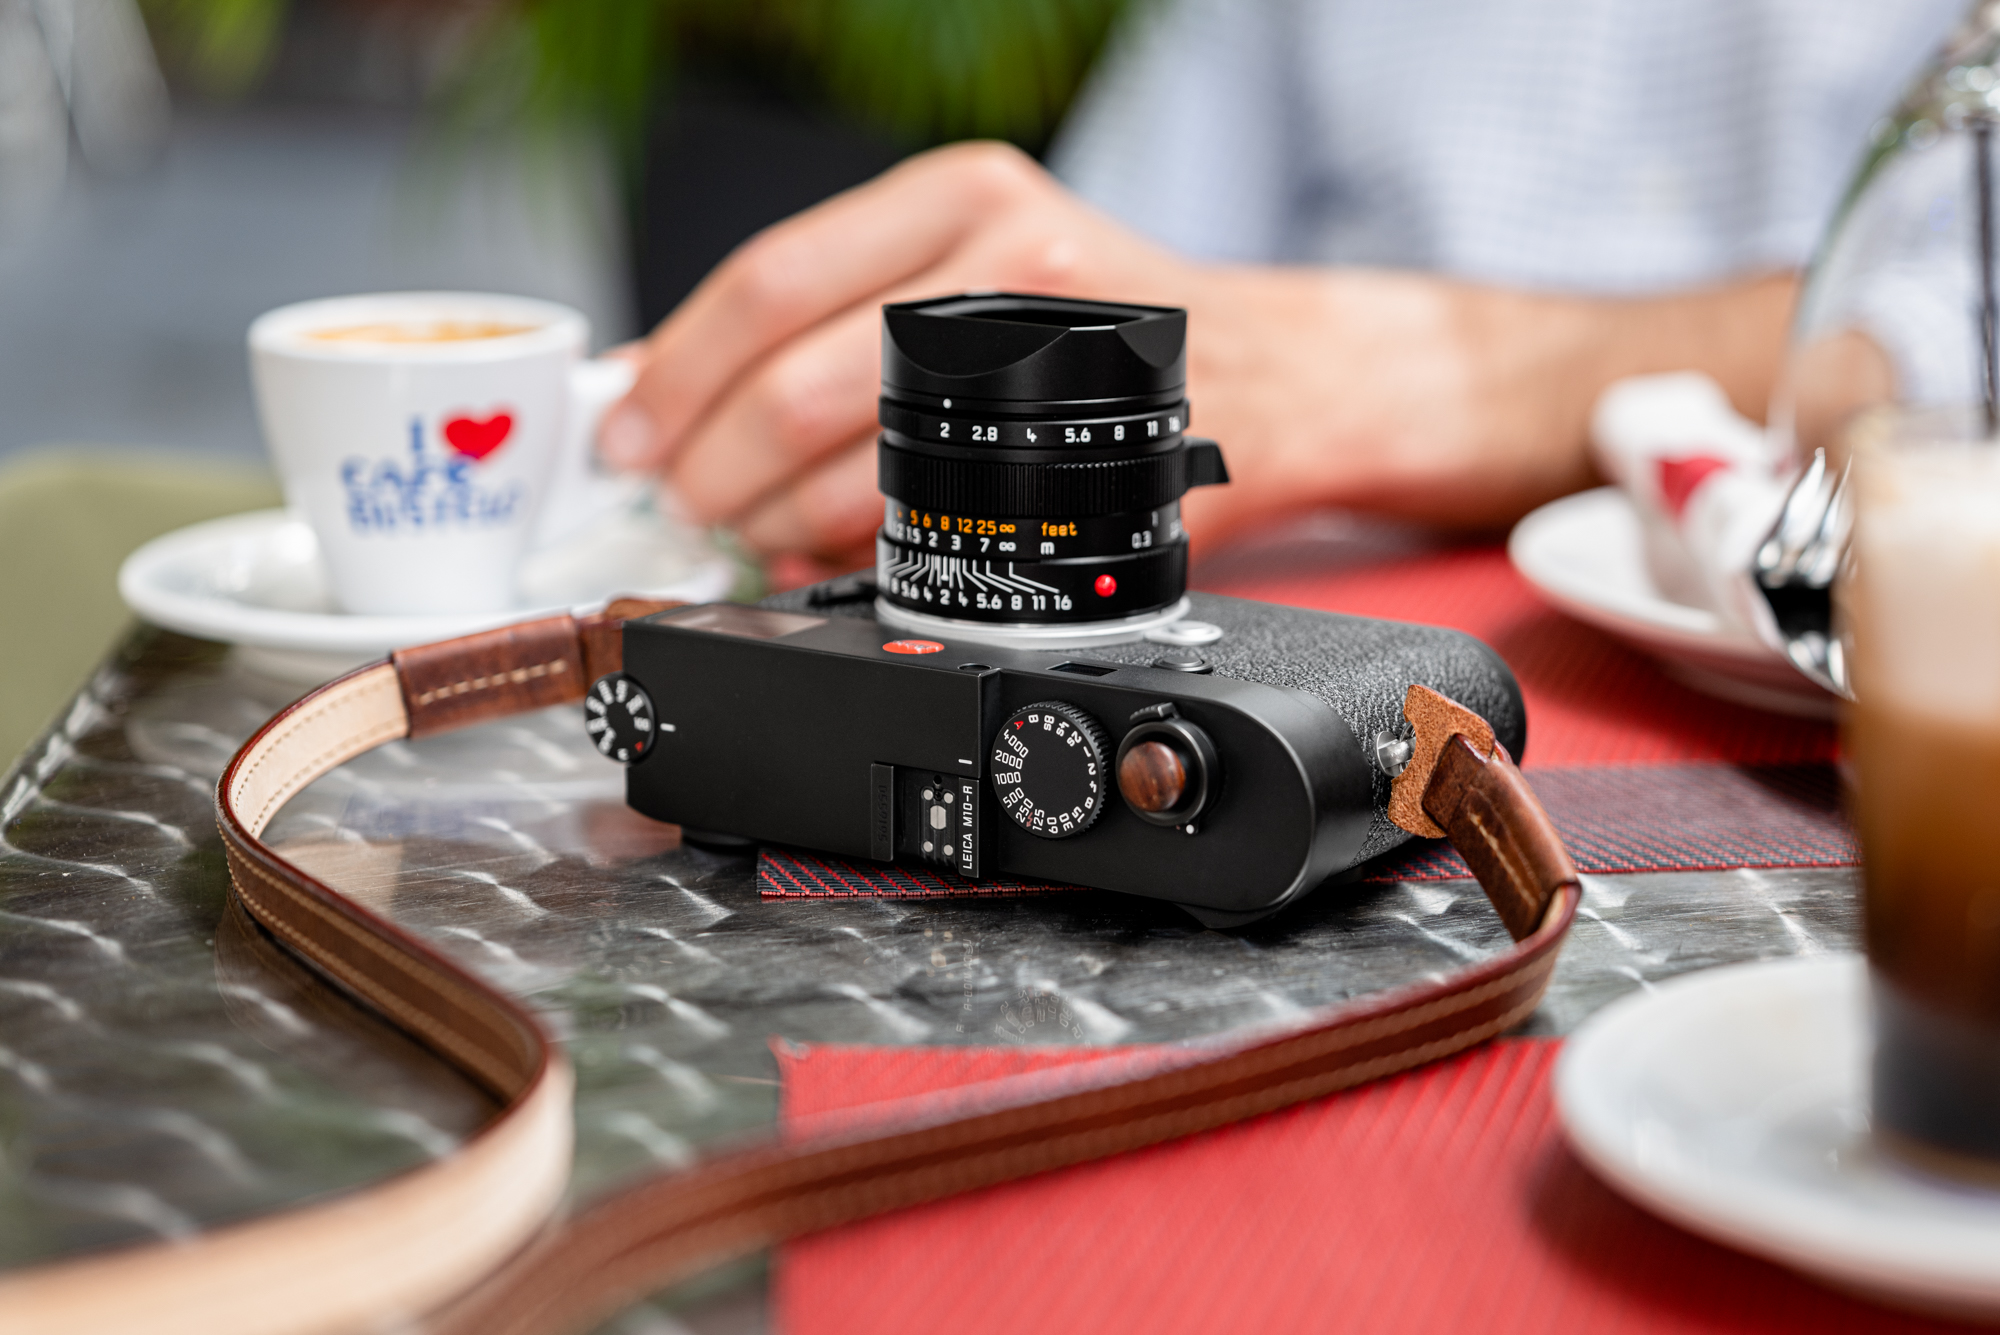 Trade up to a Leica M10-R or M10 Monochrom and receive 90% of Fair Market Value for your trade.